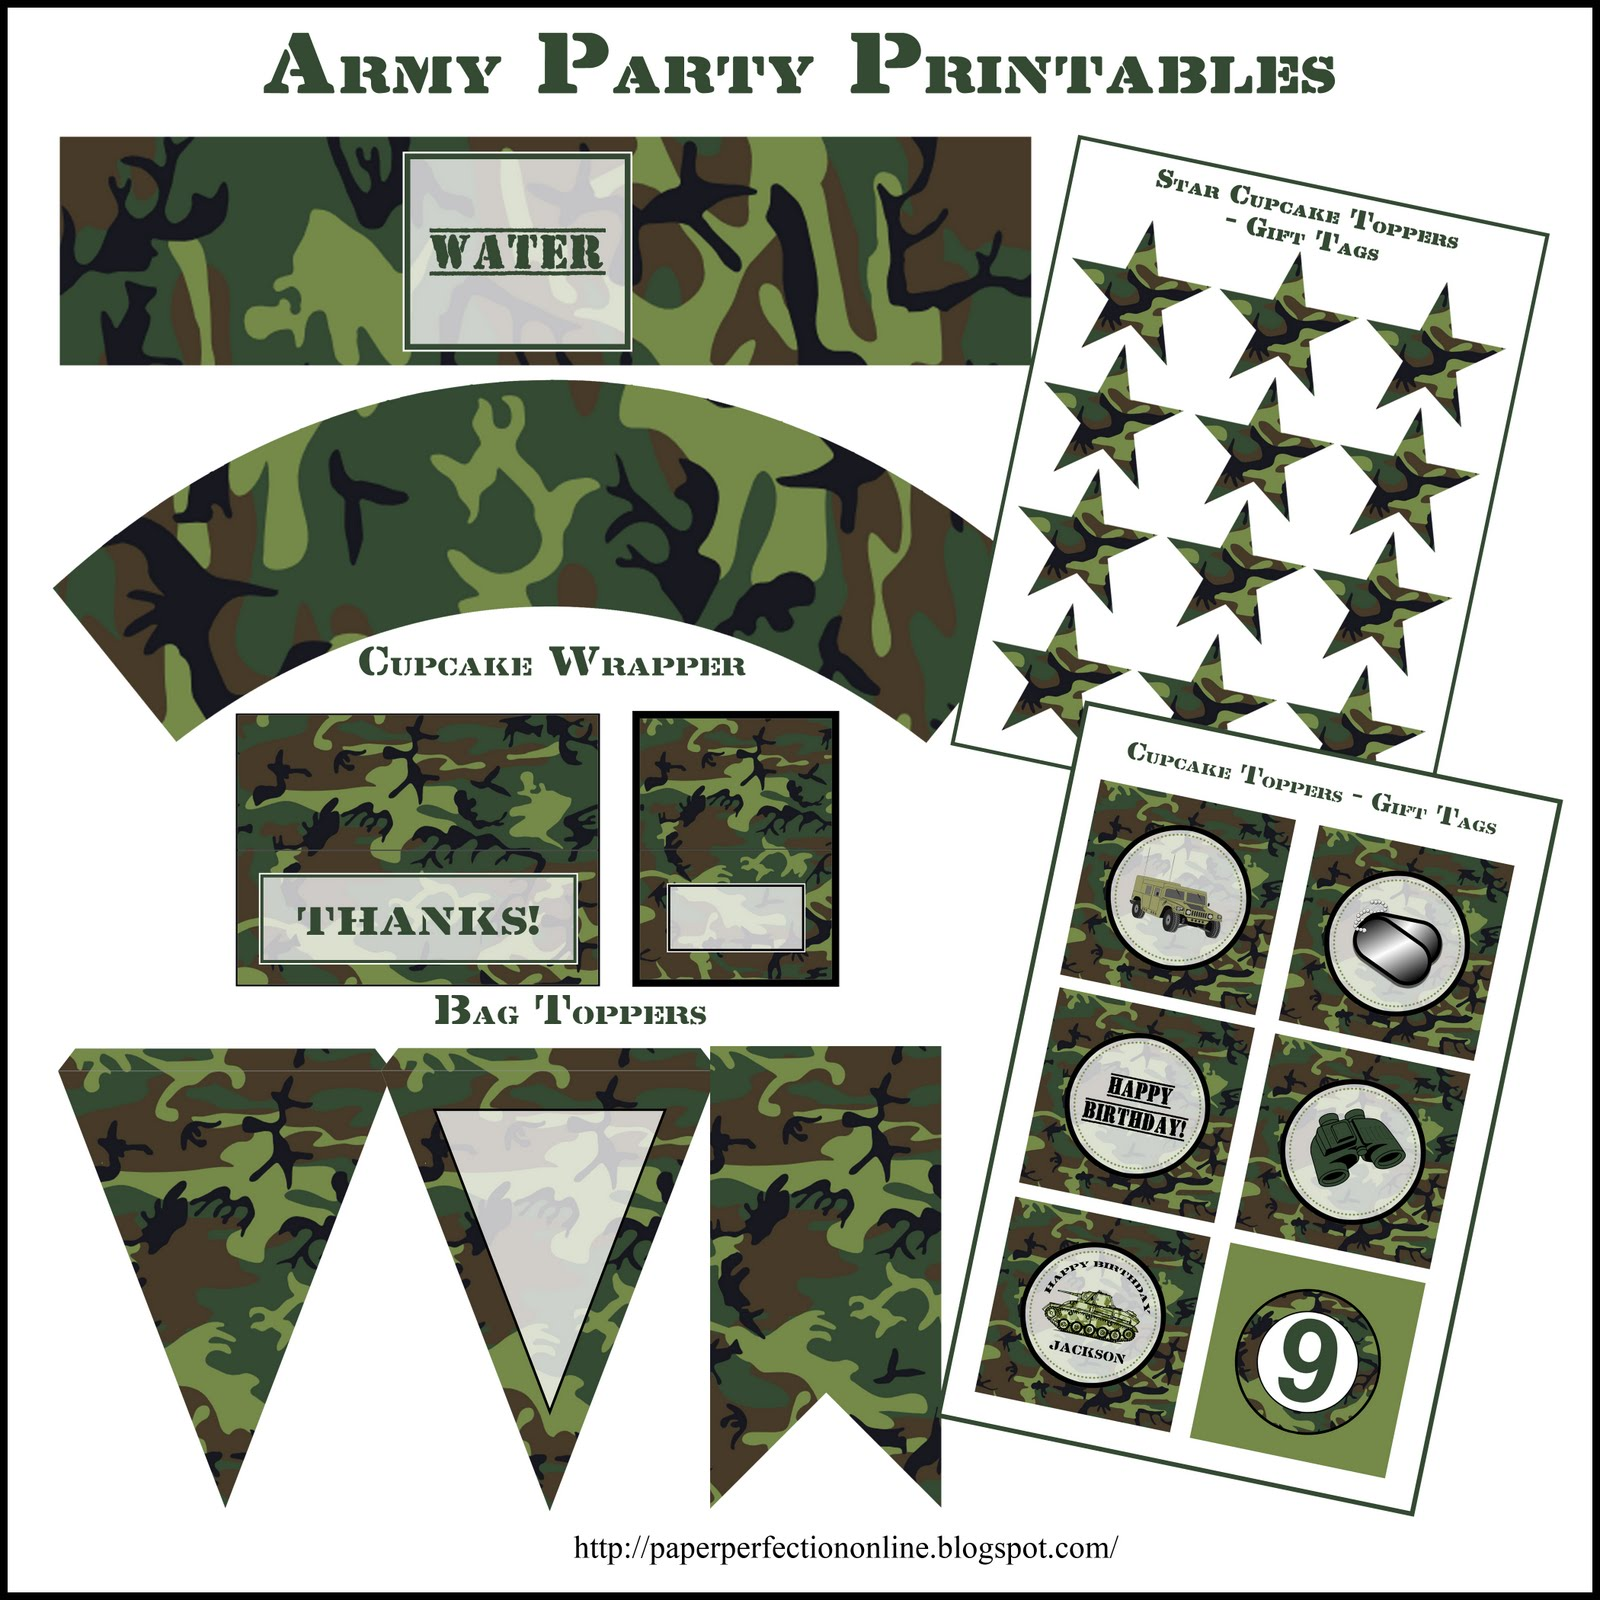 Here Are A Few Pictures From One Of Paper Perfections Clients That Used The Printables For Her Sons Paintball Birthday Party